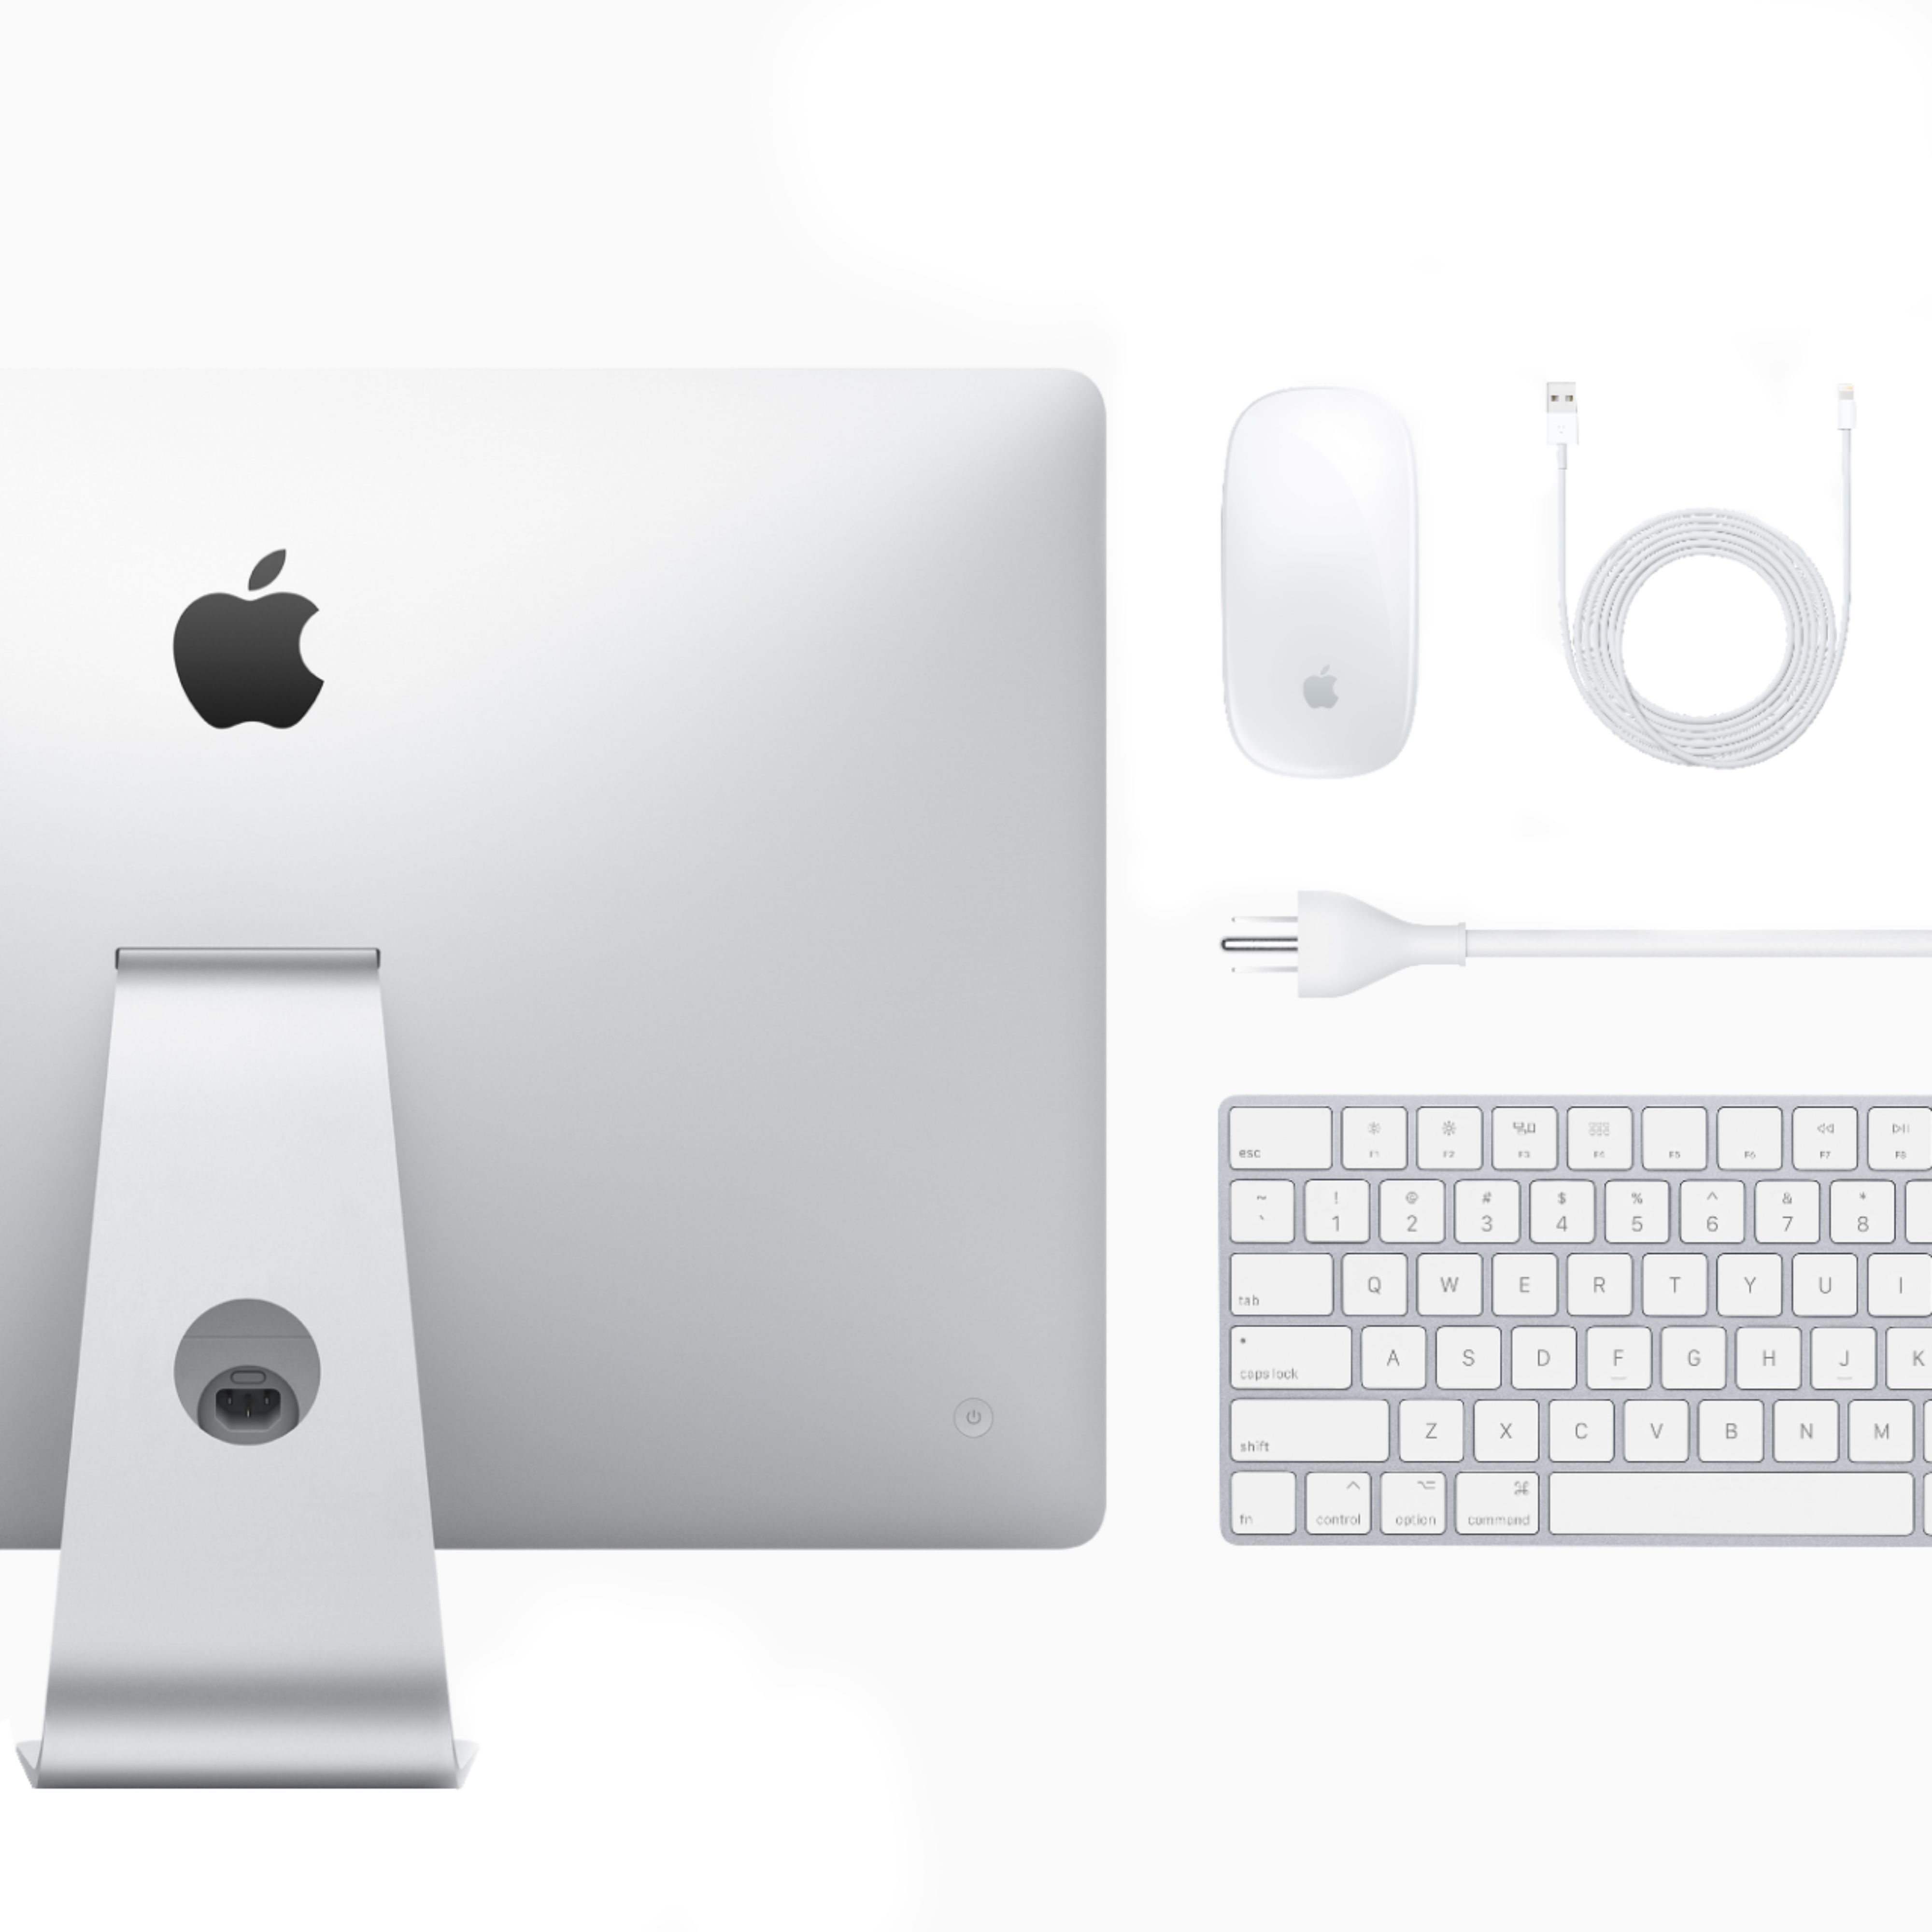 "Alt View Zoom 13. Apple - 27"" iMac® with Retina 5K display - Intel Core i5 (3.7GHz) - 8GB Memory - 2TB Fusion Drive - Silver."